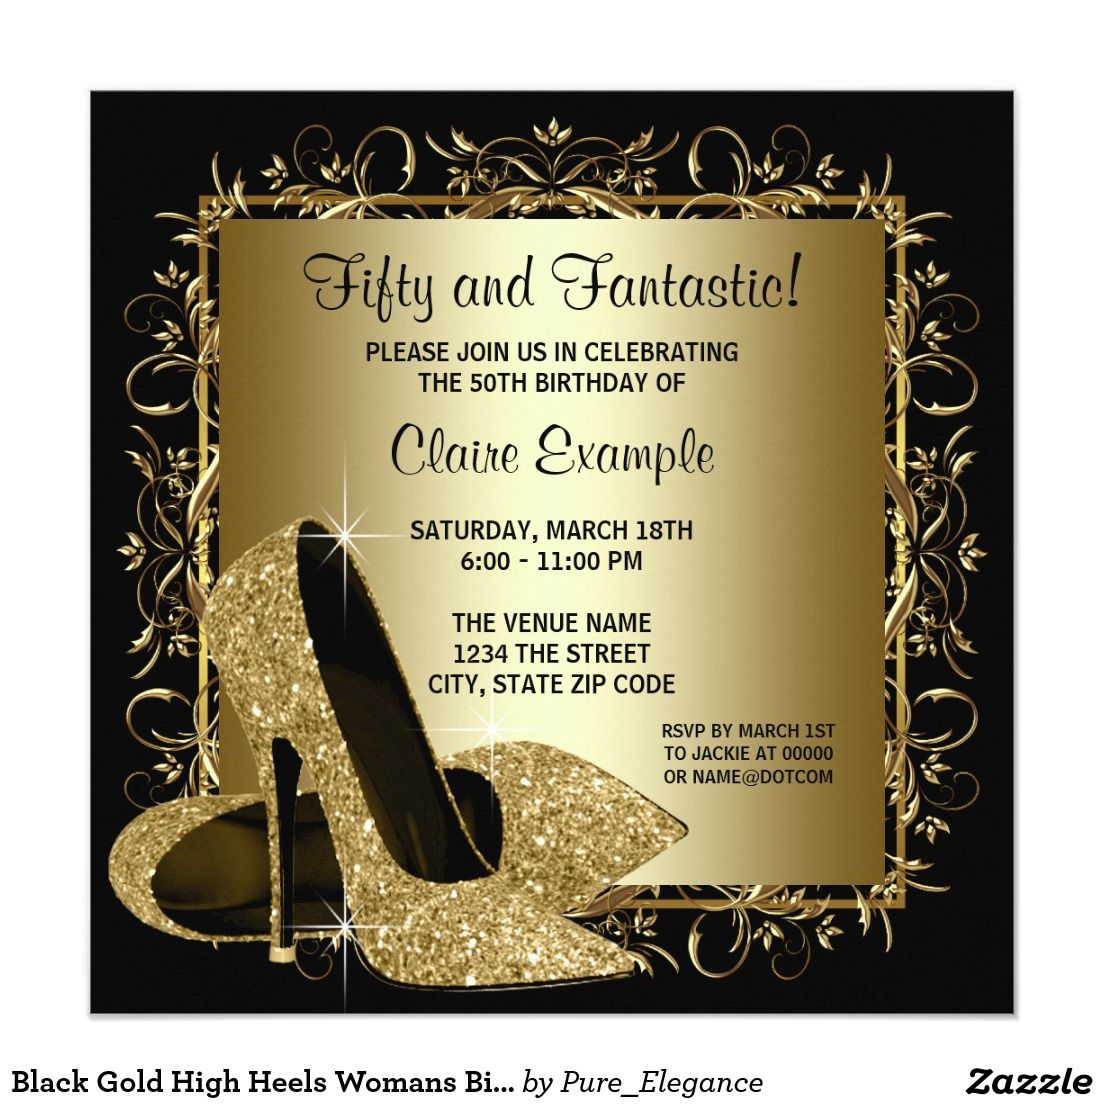 Black Gold High Heels Womans Birthday Party Invitation   Womans ...